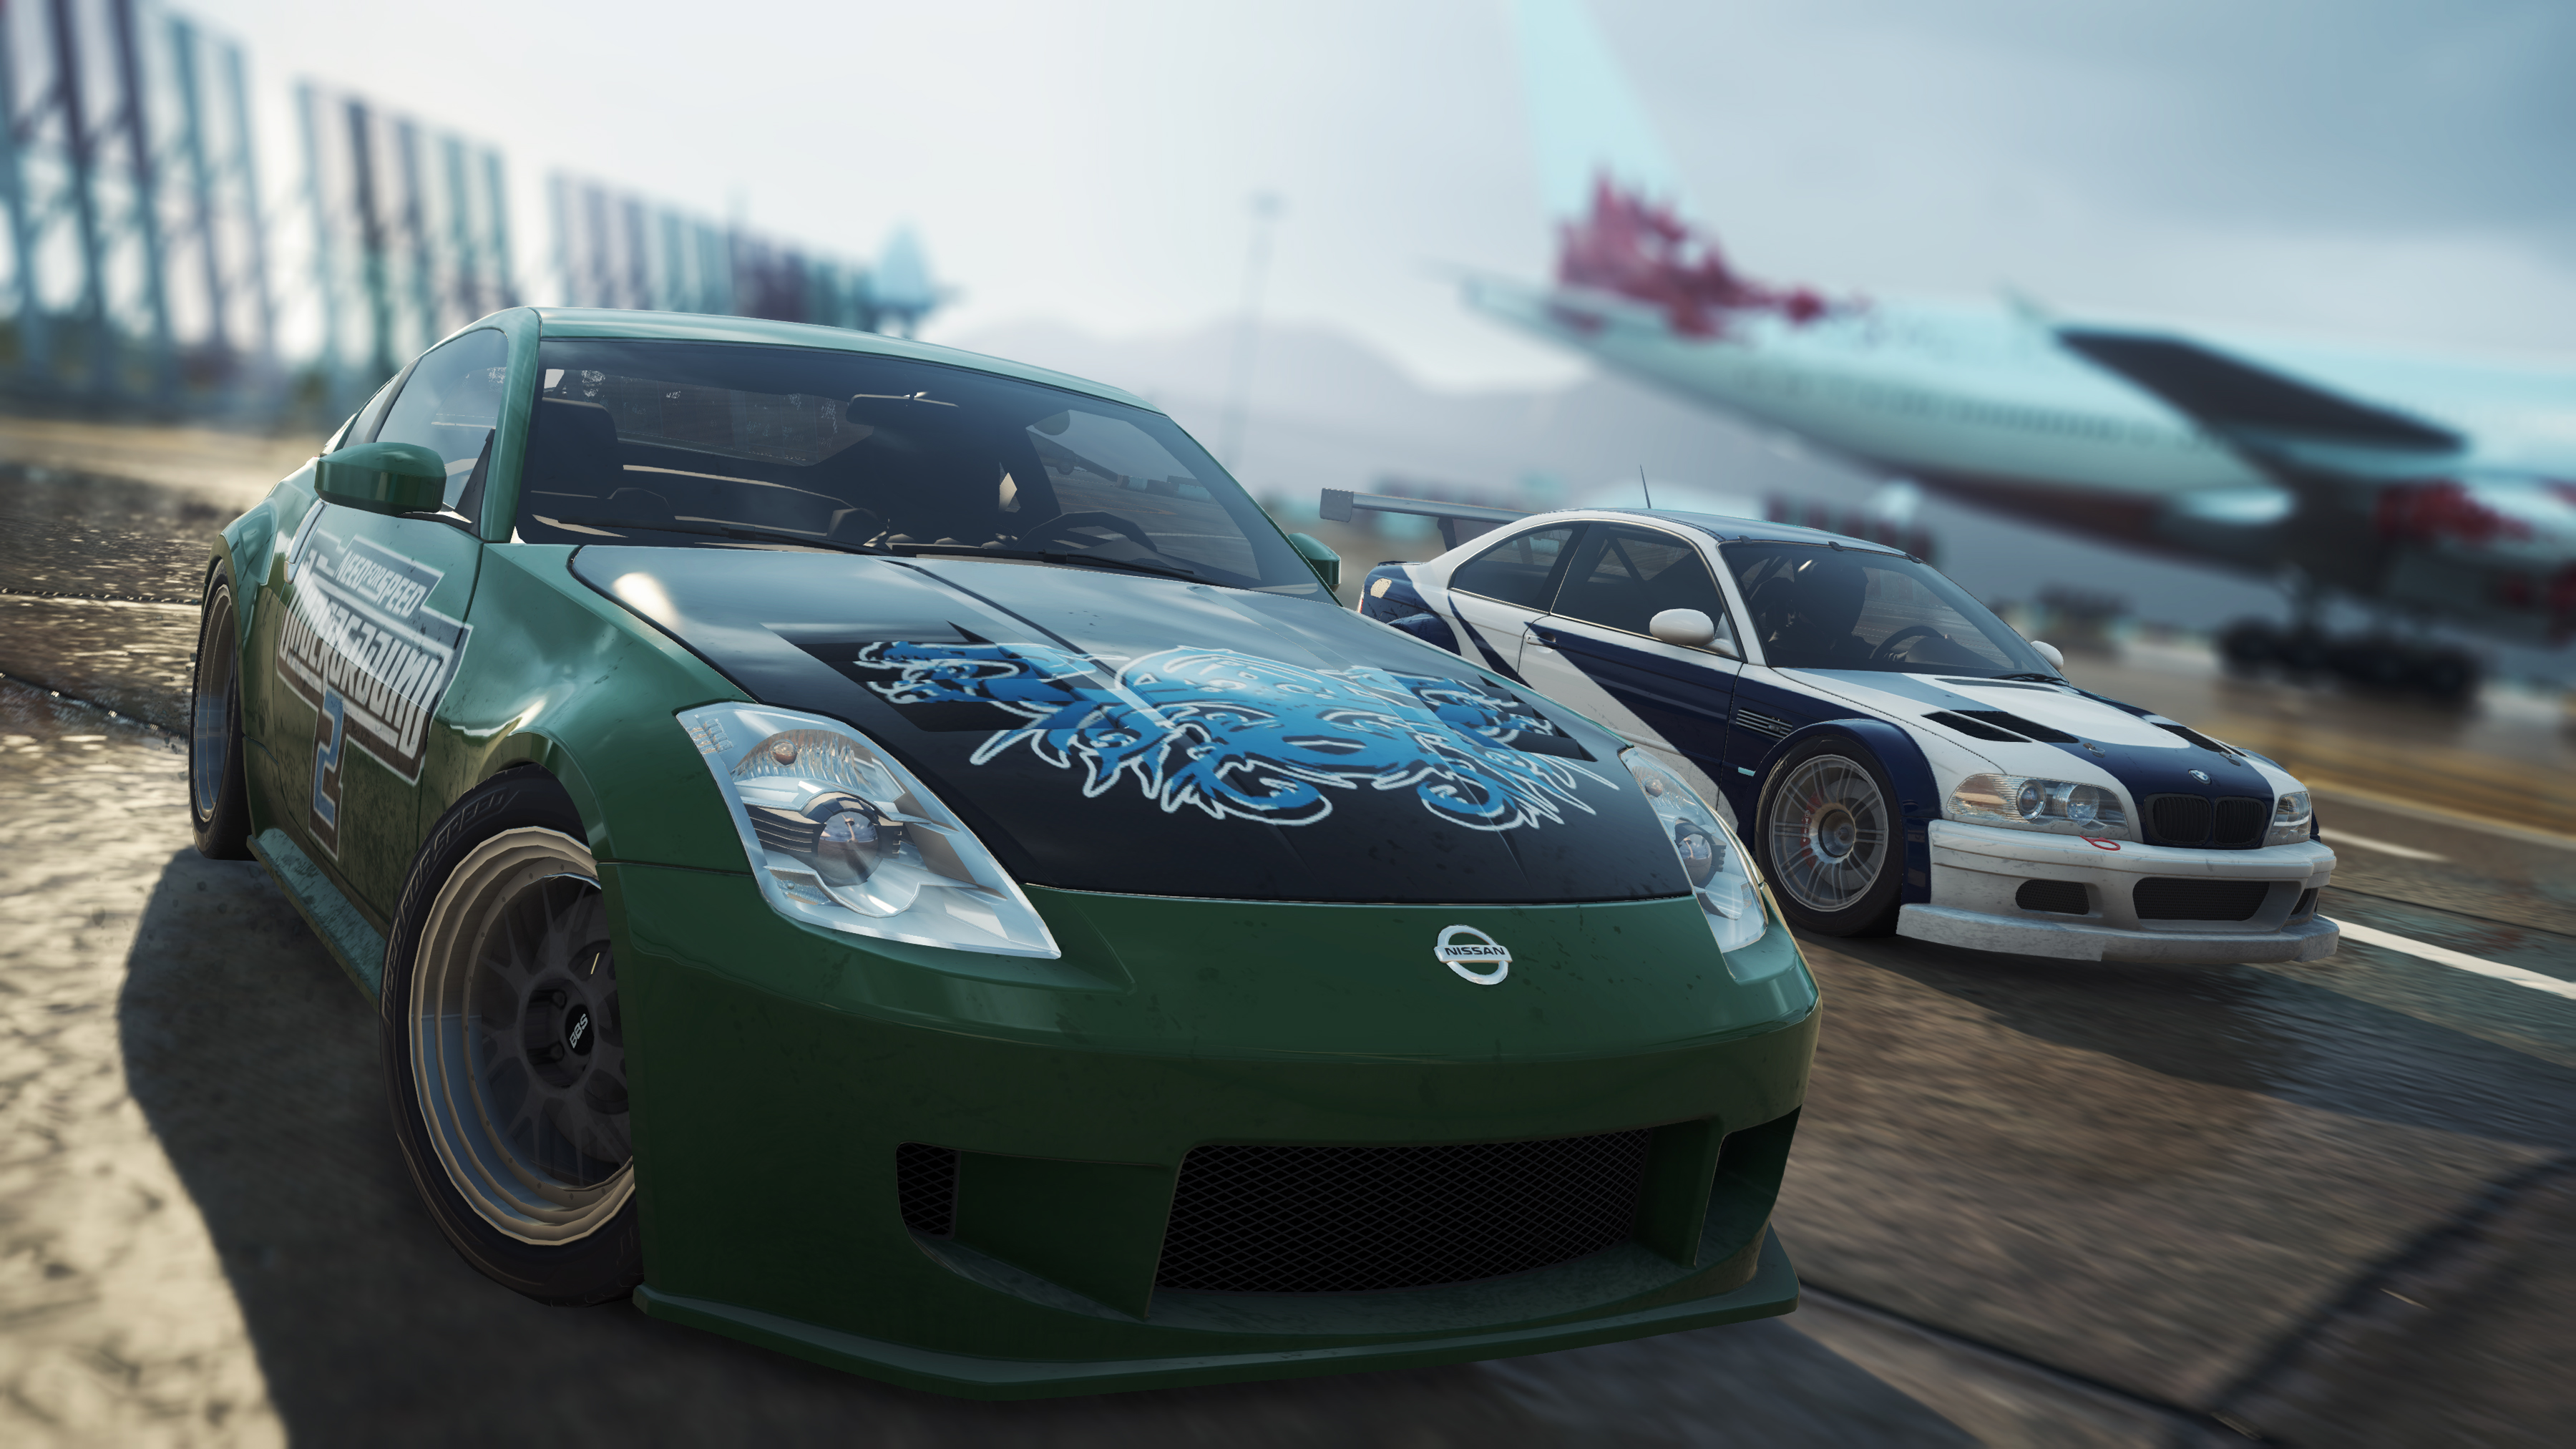 This Nissan didn't look this good in NFS Underground 2, but looks great in the Heroes DLC.